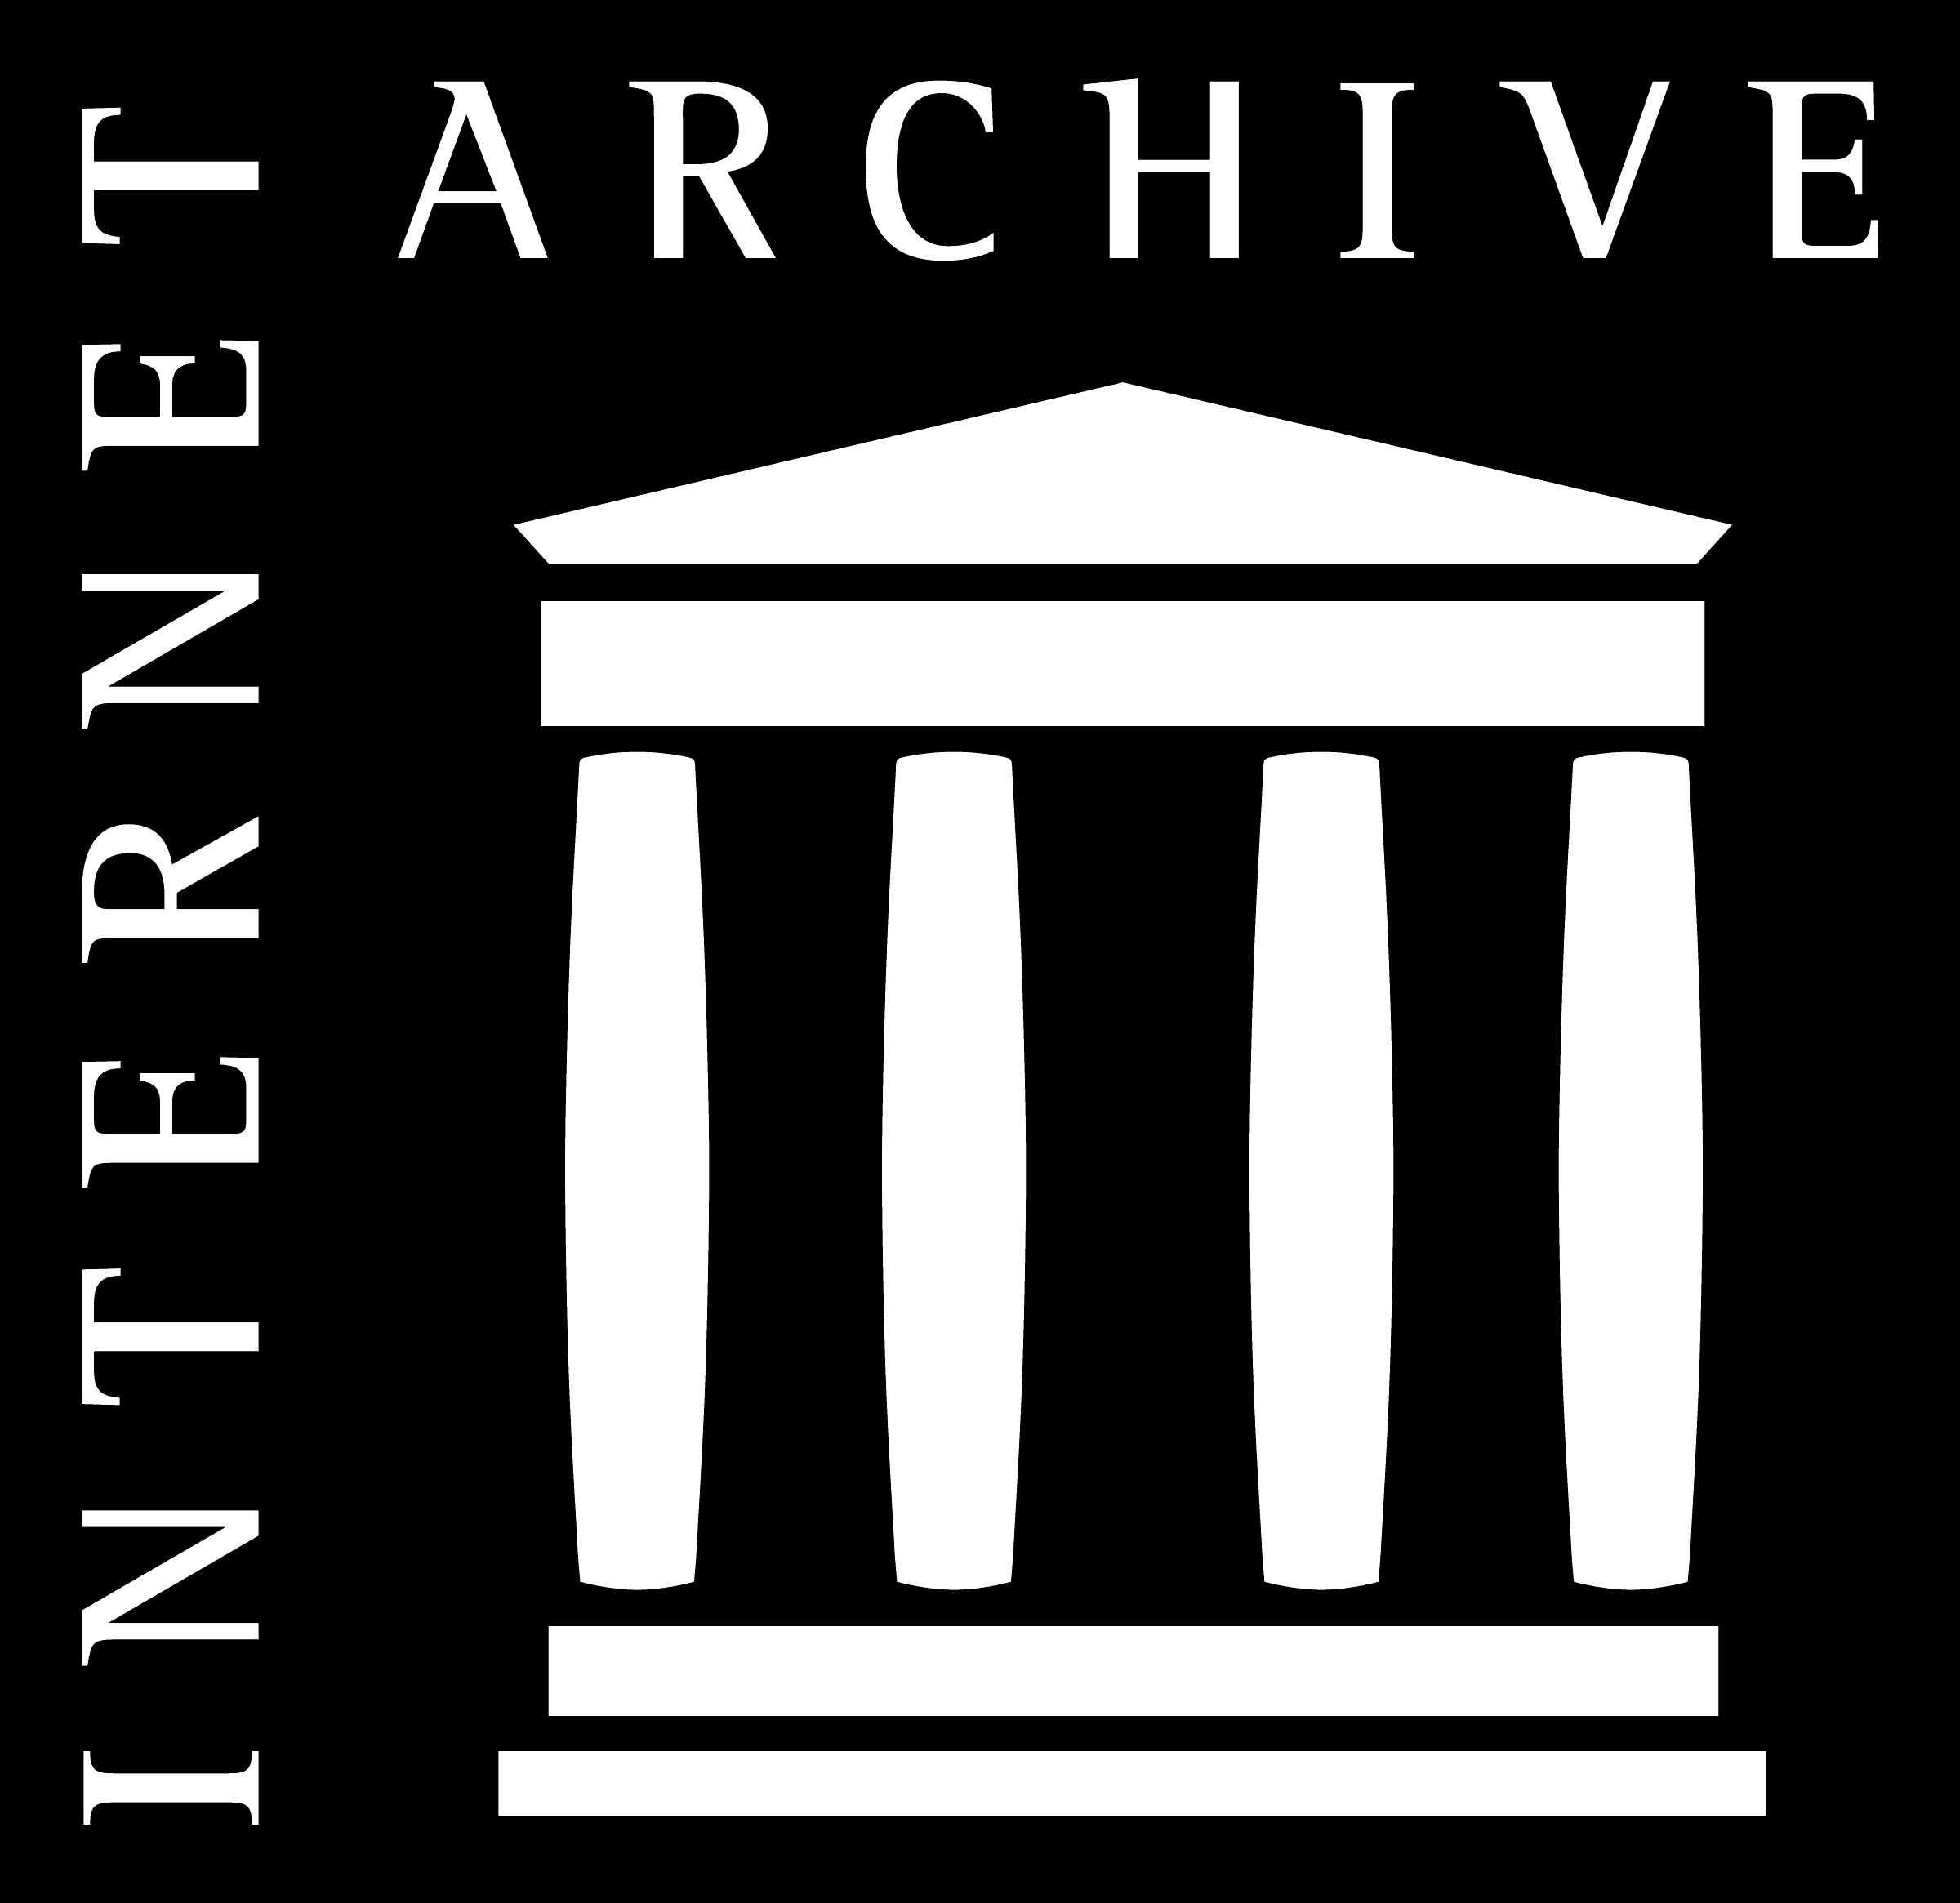 Internet Archive image